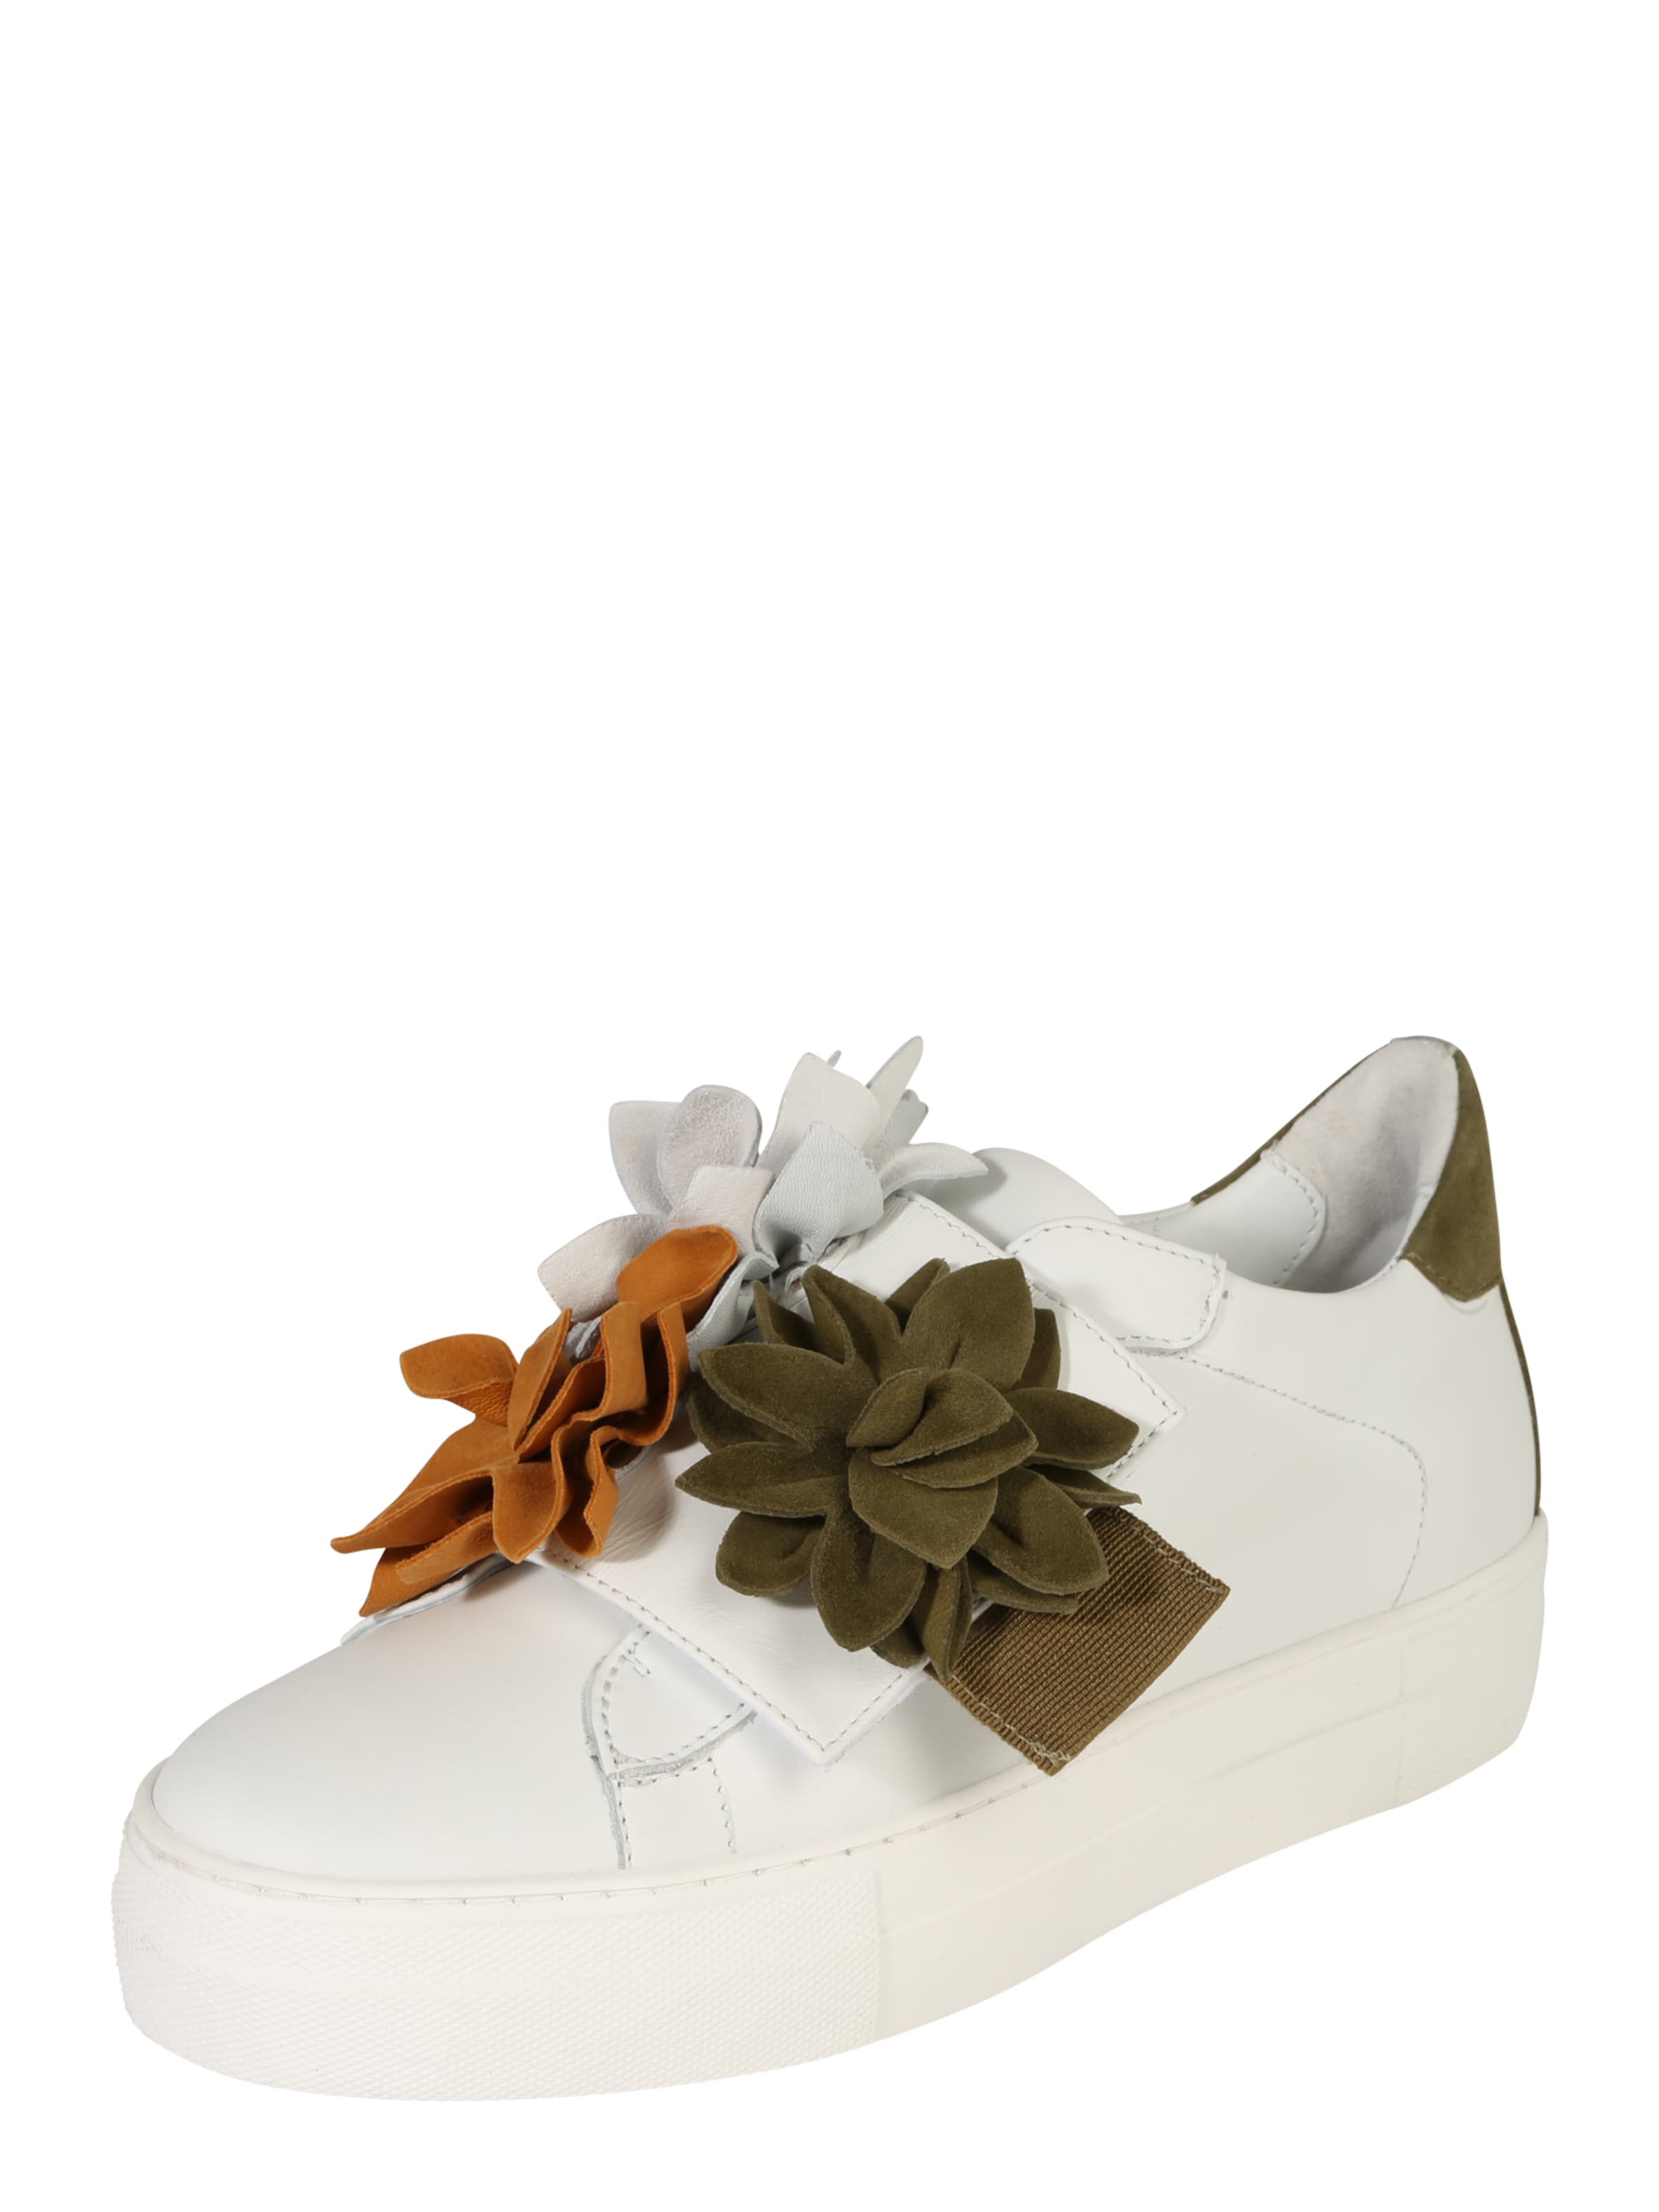 Donna Carolina Sneaker mit Blumenapplikation